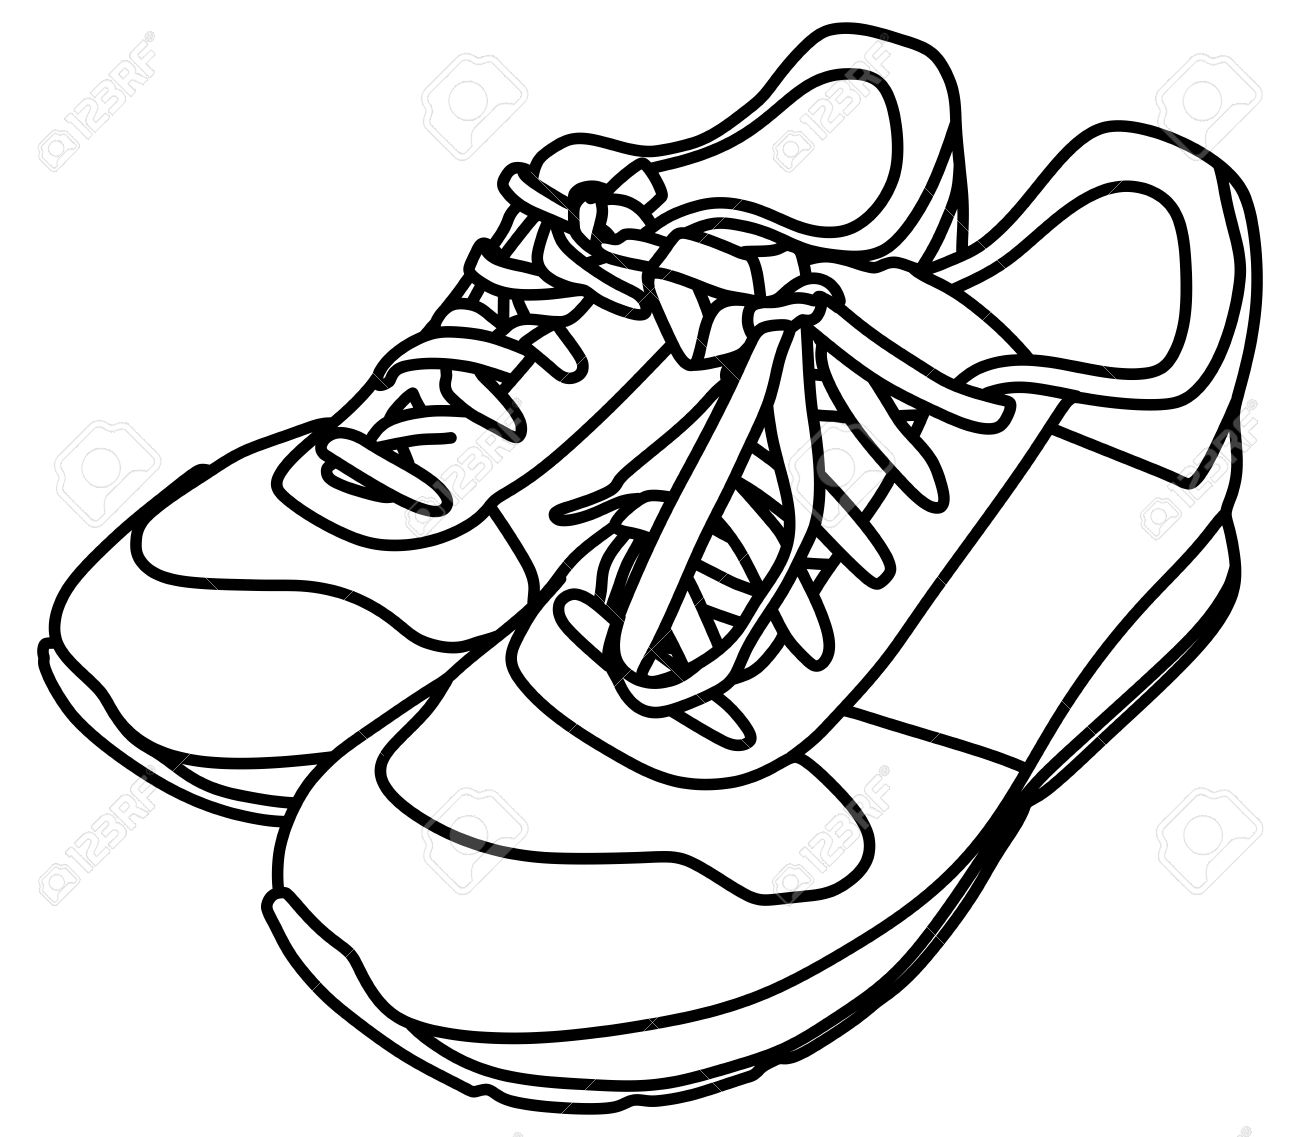 Clipart black and white shoes 4 » Clipart Station.